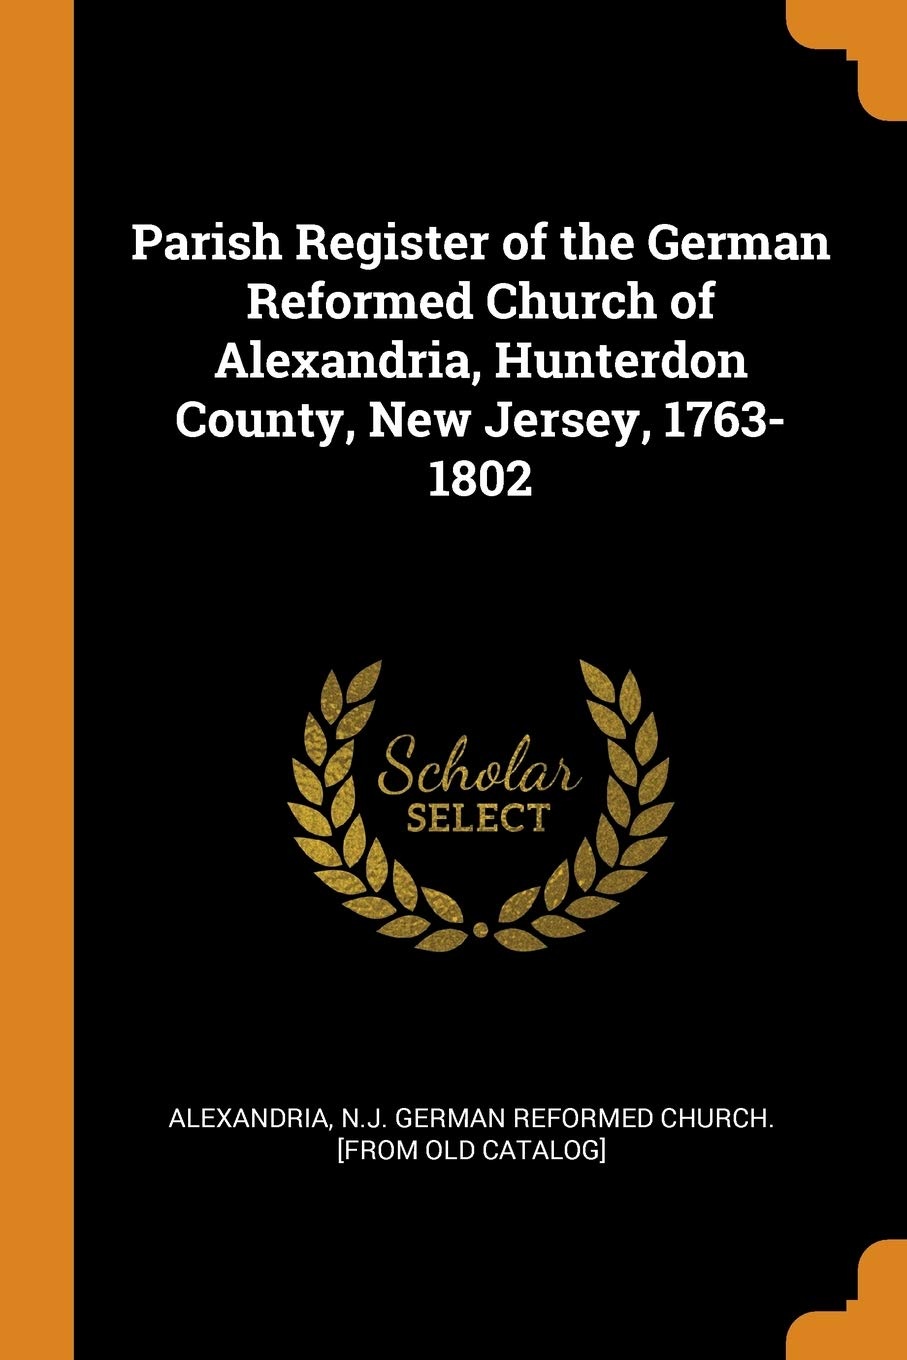 Hunterdon Buy Sell Trade >> Parish Register Of The German Reformed Church Of Alexandria